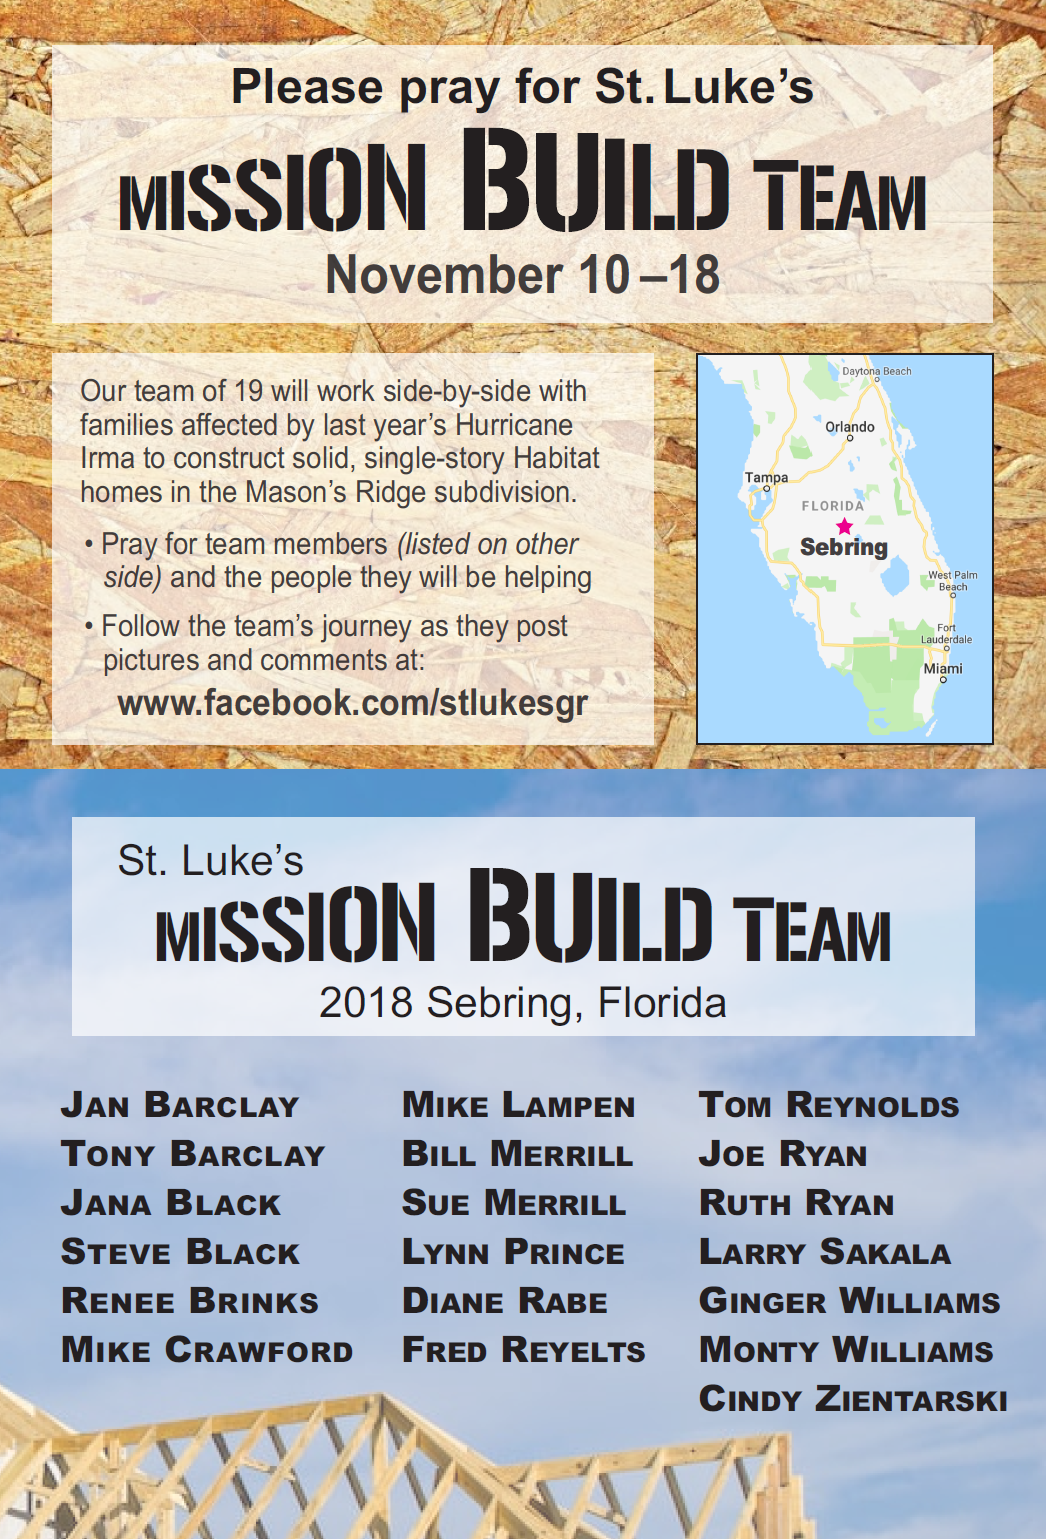 Mission Build Team Members